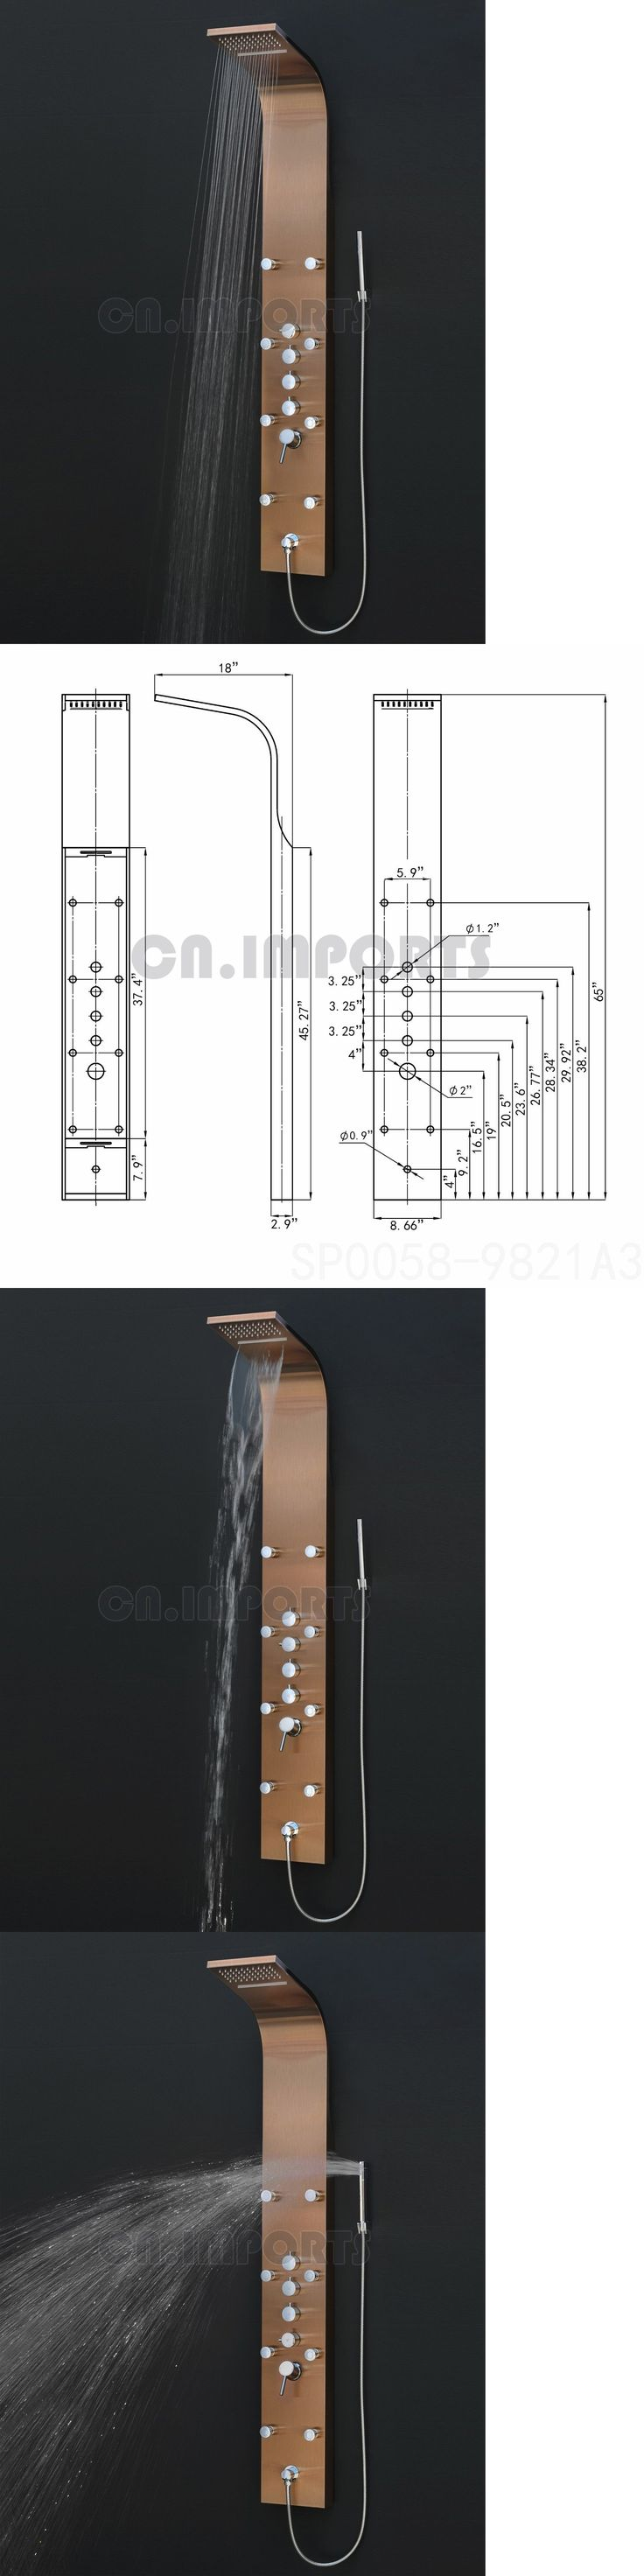 Shower Panels and Massagers 121849: Stainless Steel Rainfall Waterfall Shower Head Shower Tower Panel In Bronze -> BUY IT NOW ONLY: $249.99 on eBay!